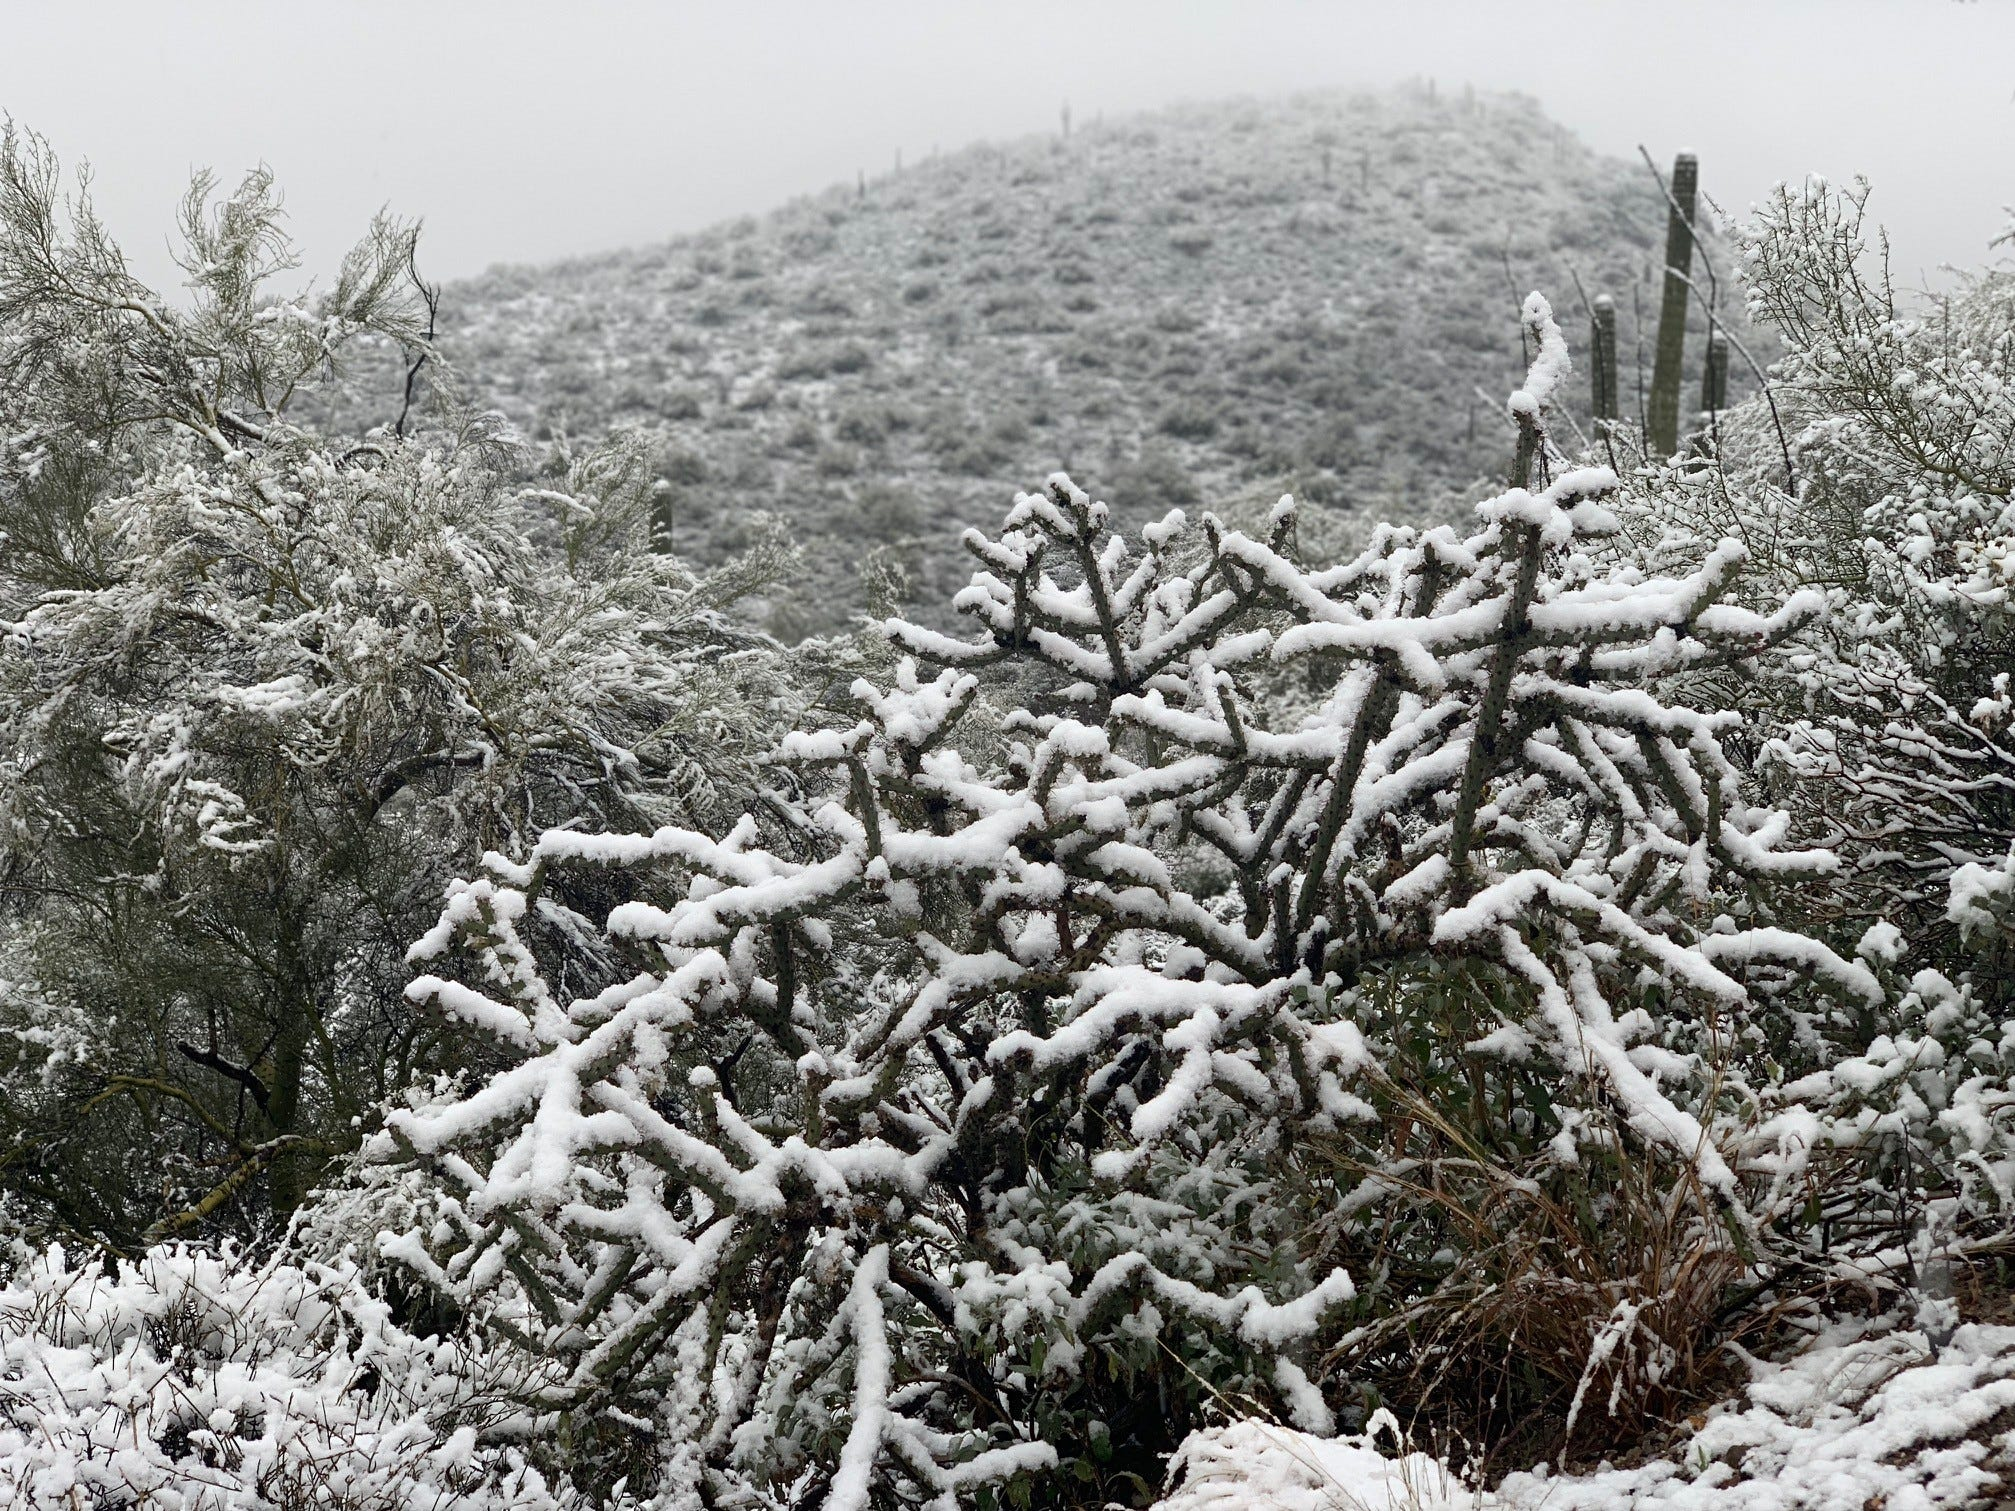 Snow dusts the desert landscape at Tucson's Tumamoc Hill park on Feb. 22, 2019.